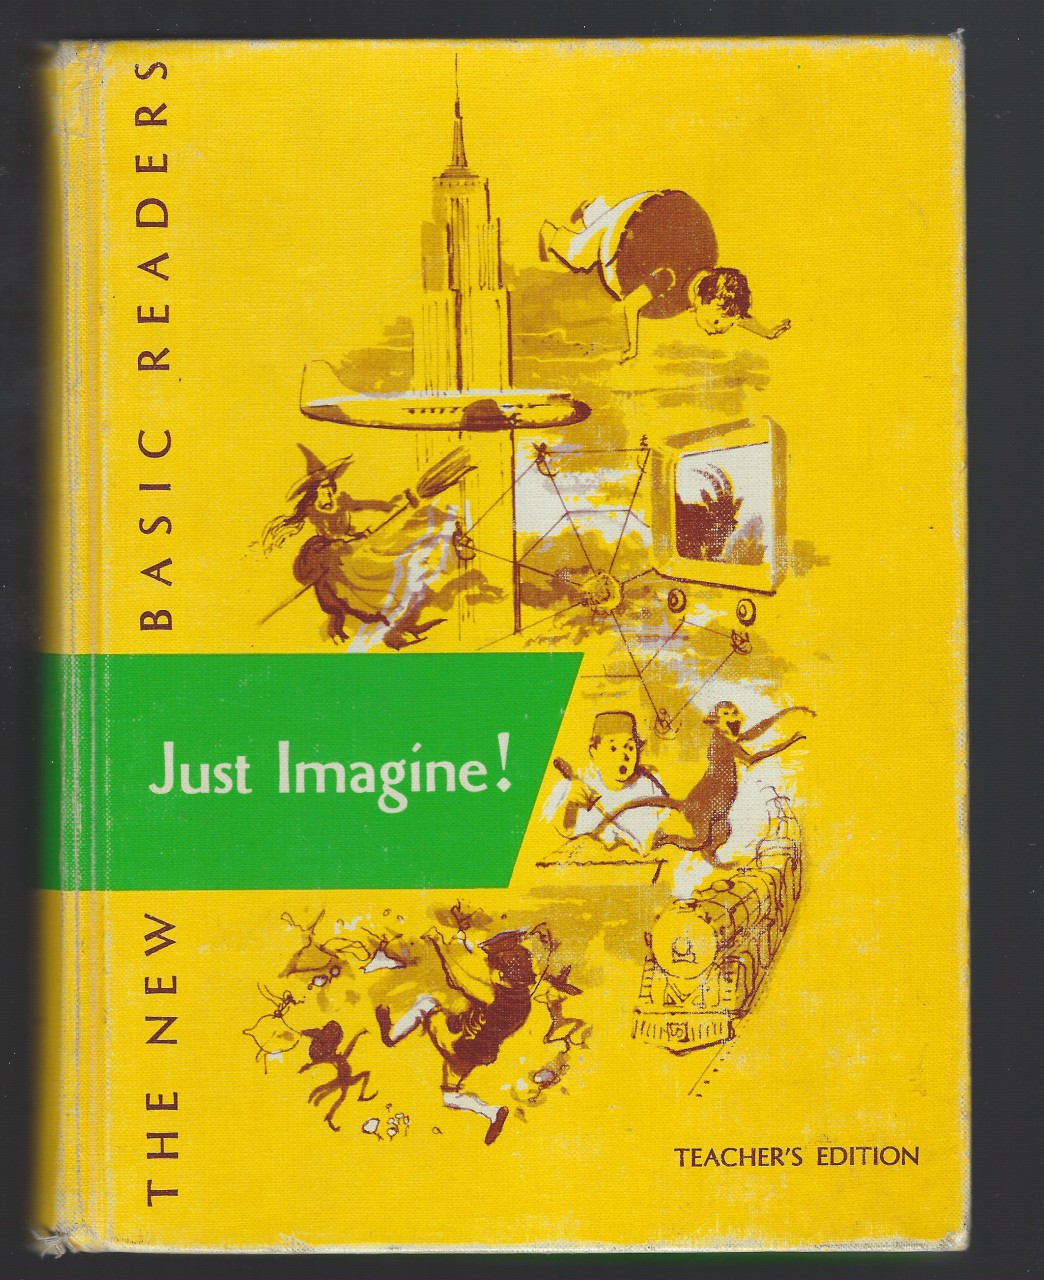 Just Imagine! 1953 Teachers Edition Dick and Jane First Printing New Basic Readers, William S. Gray et. al.